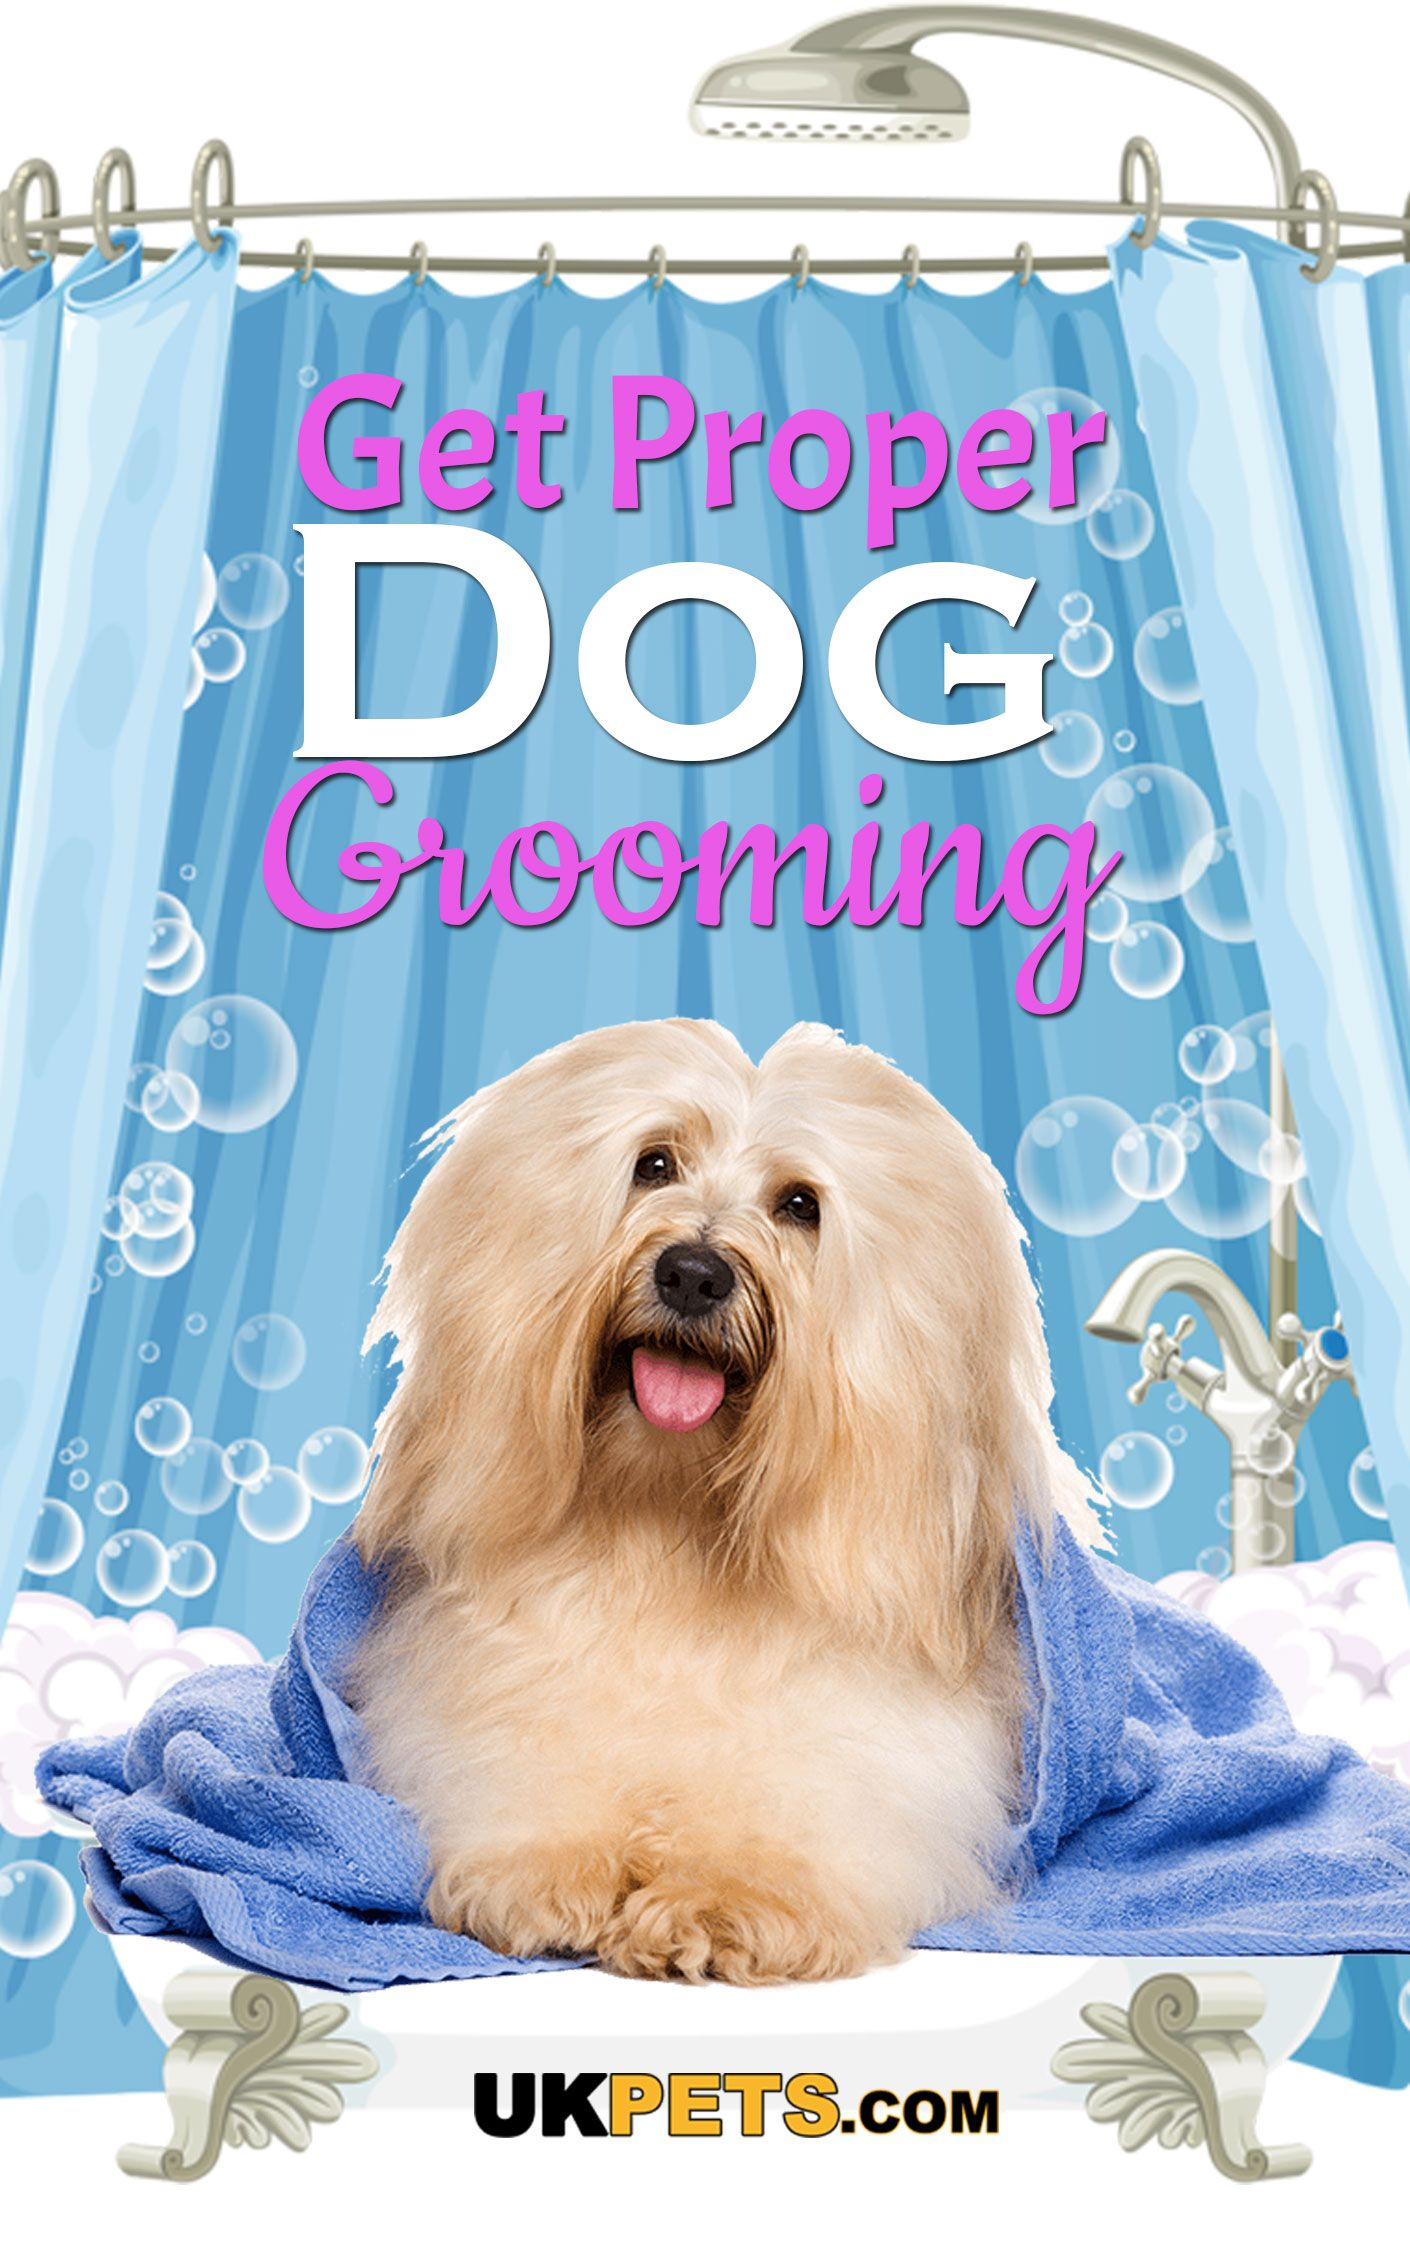 Dog Grooming Should You Do It Yourself? (With images